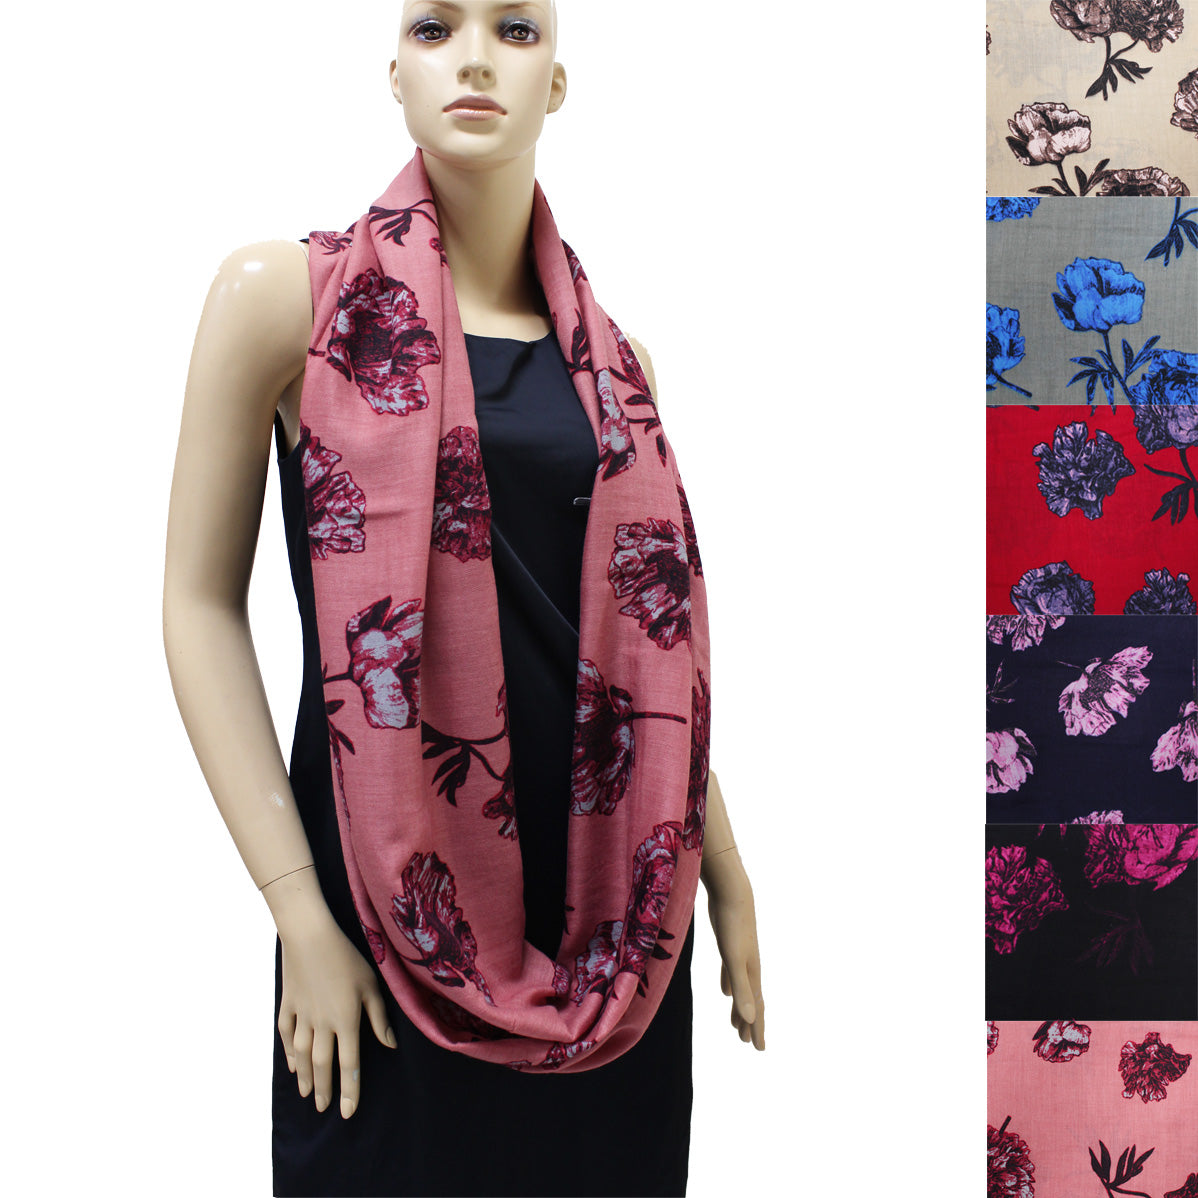 Rose Pattern Infinity Scarf 7552 Assorted Colors